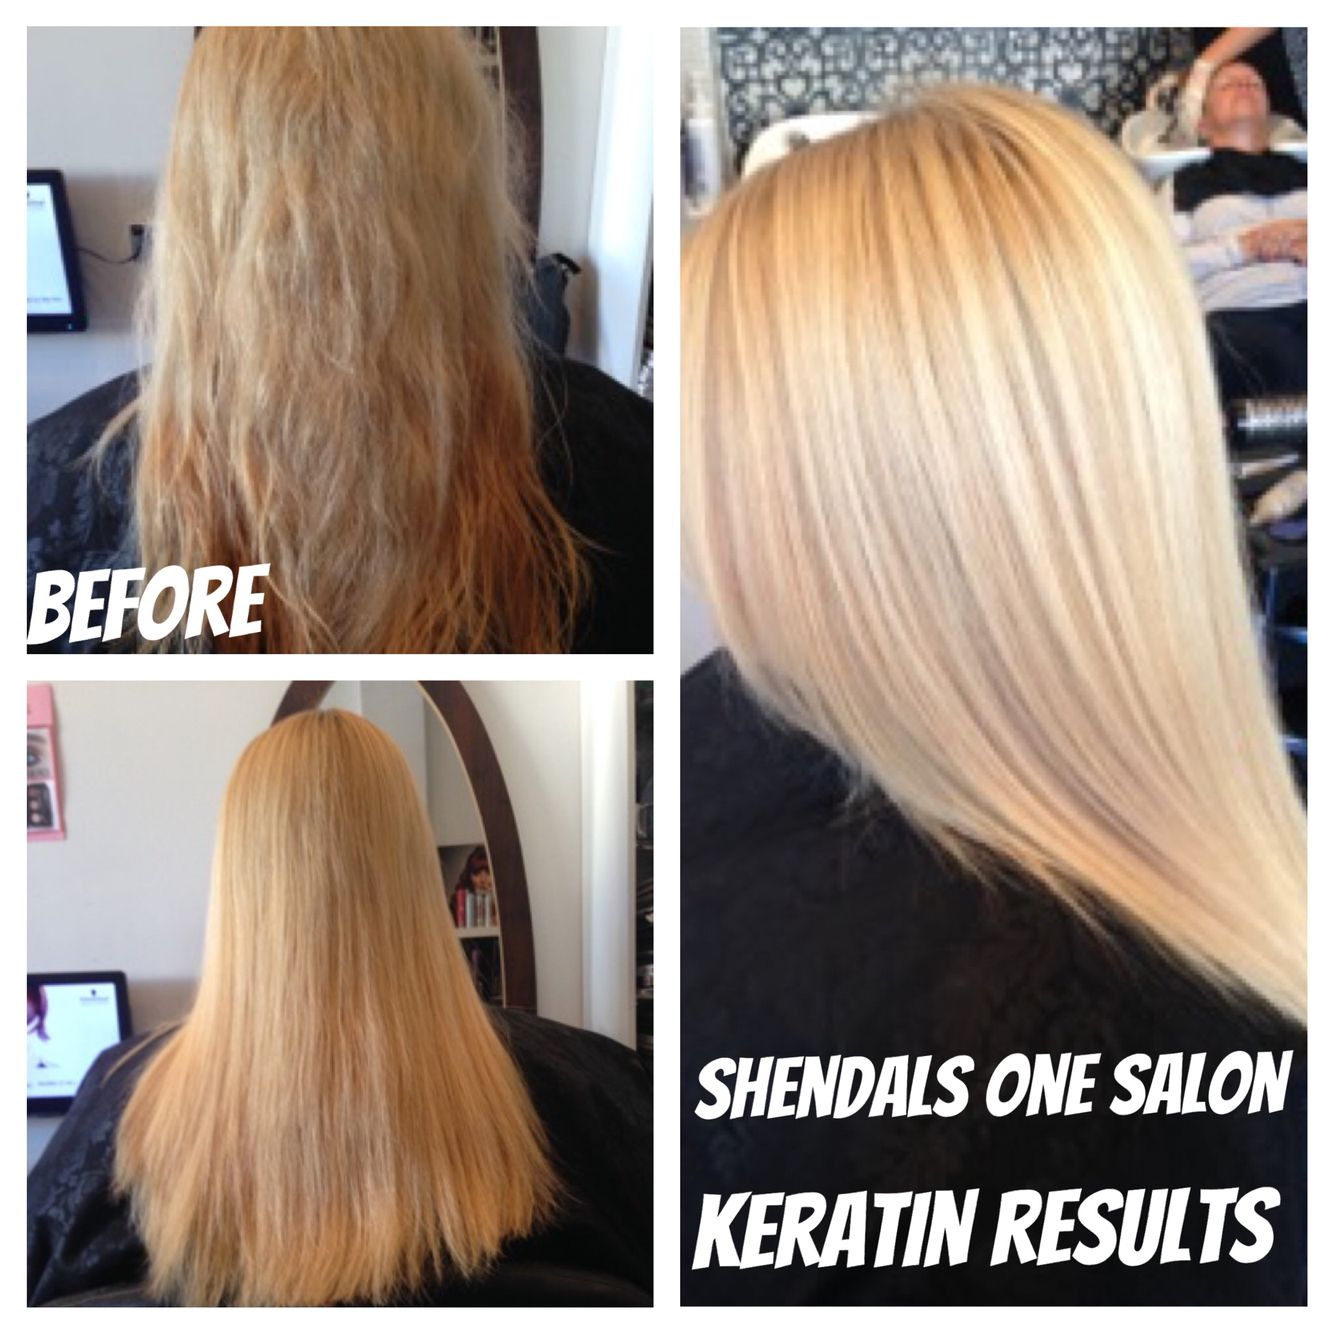 Magic straight perm vs keratin - Amazing Keratin Treatment Results Before This Hair Was Frizzy Dry After The Treatment The